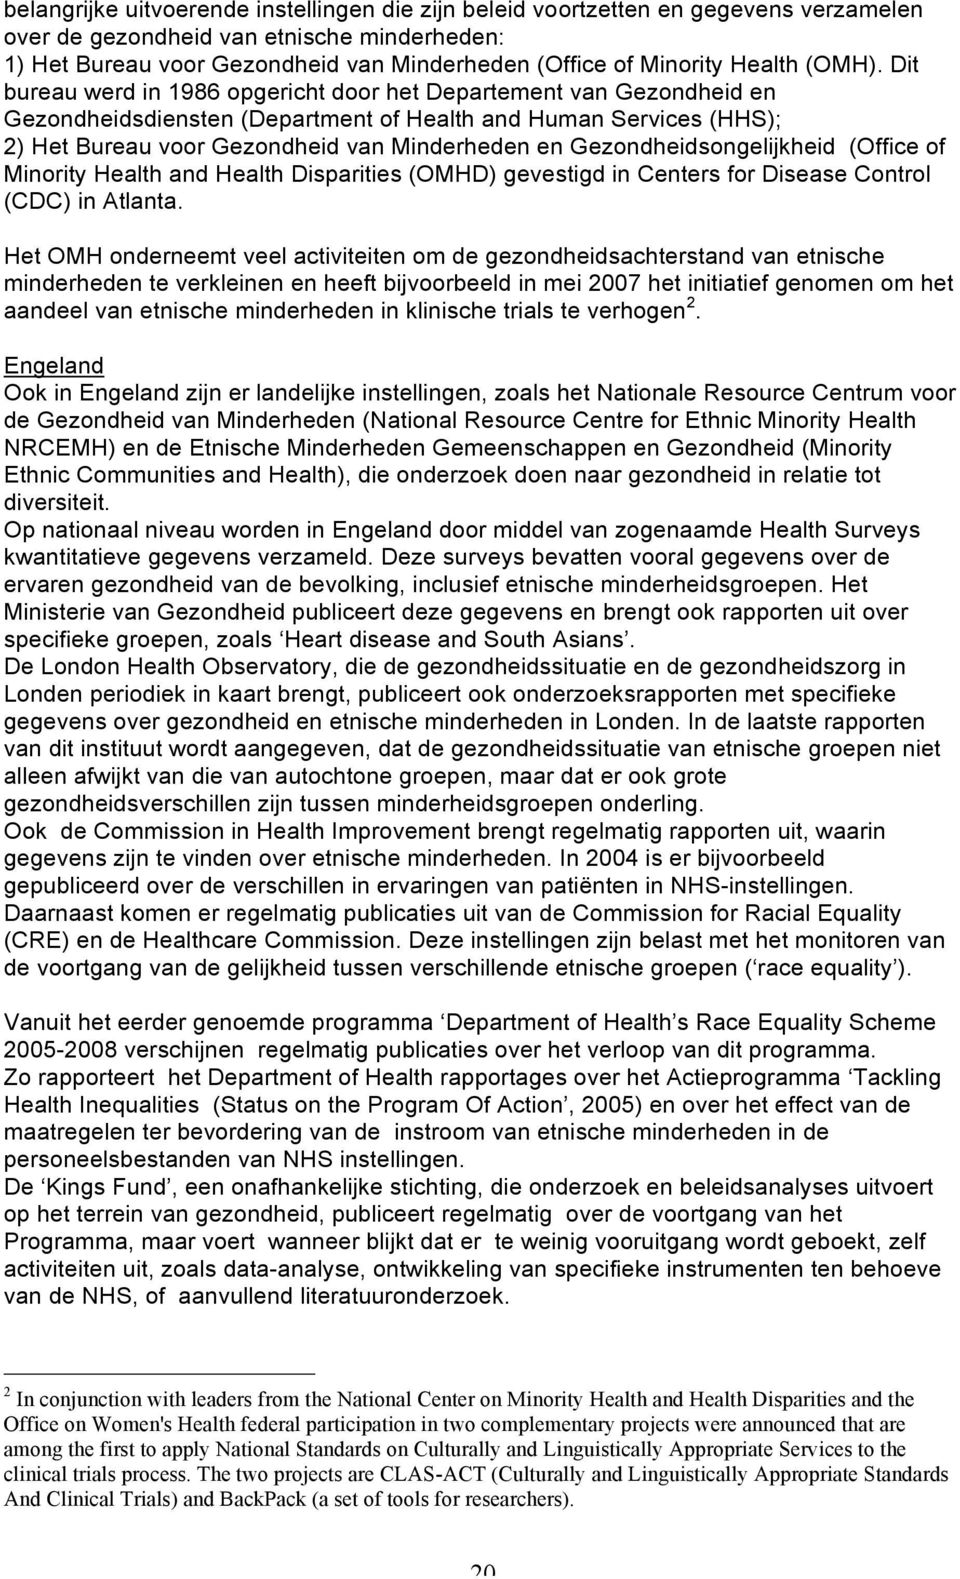 Dit bureau werd in 1986 opgericht door het Departement van Gezondheid en Gezondheidsdiensten (Department of Health and Human Services (HHS); 2) Het Bureau voor Gezondheid van Minderheden en